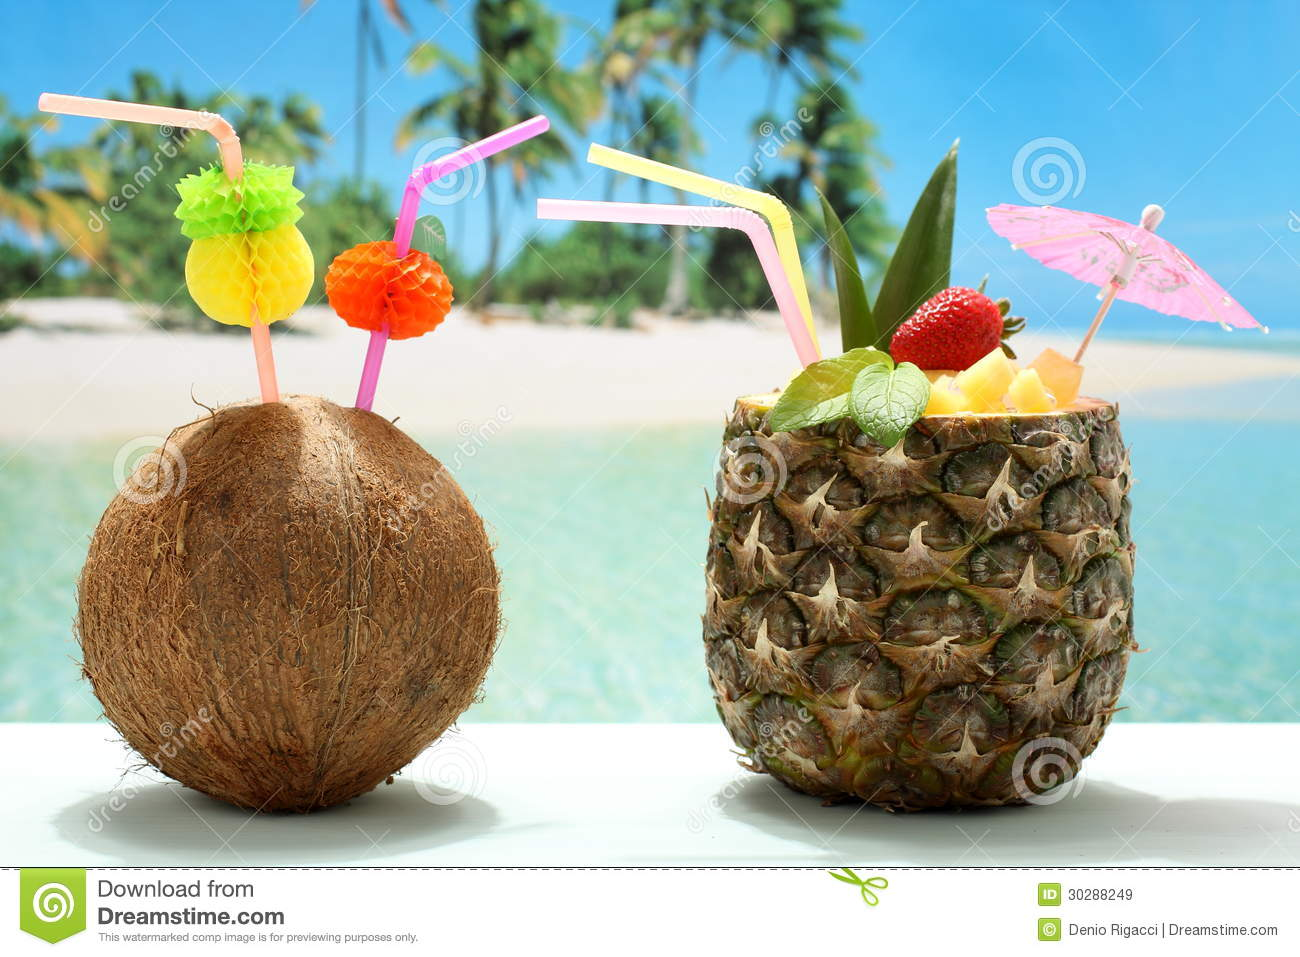 Fruit Cocktails Coconut And Pineapple On The Beach Royalty Free Stock ...